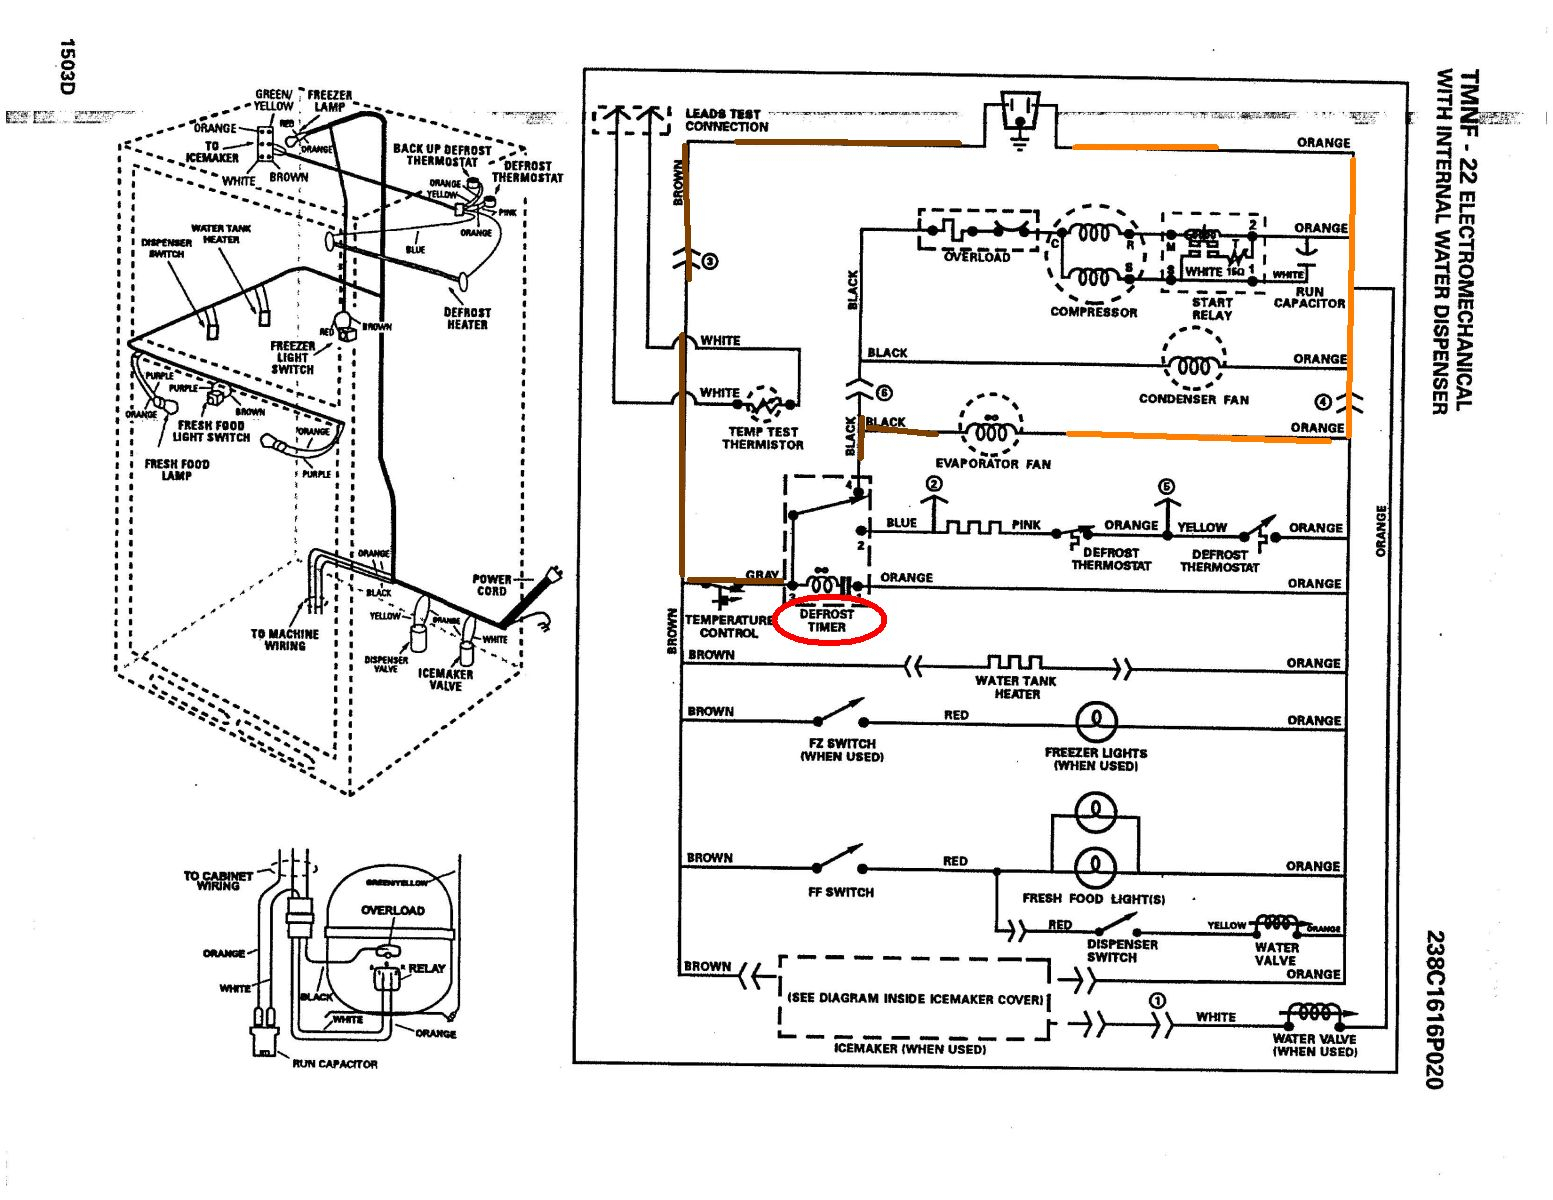 ge refrigerator wiring diagram Download-Ge Refrigerator Wiring Diagram Wiring Diagram Ge Refrigerator Ge Profile Mesmerizing 7-f